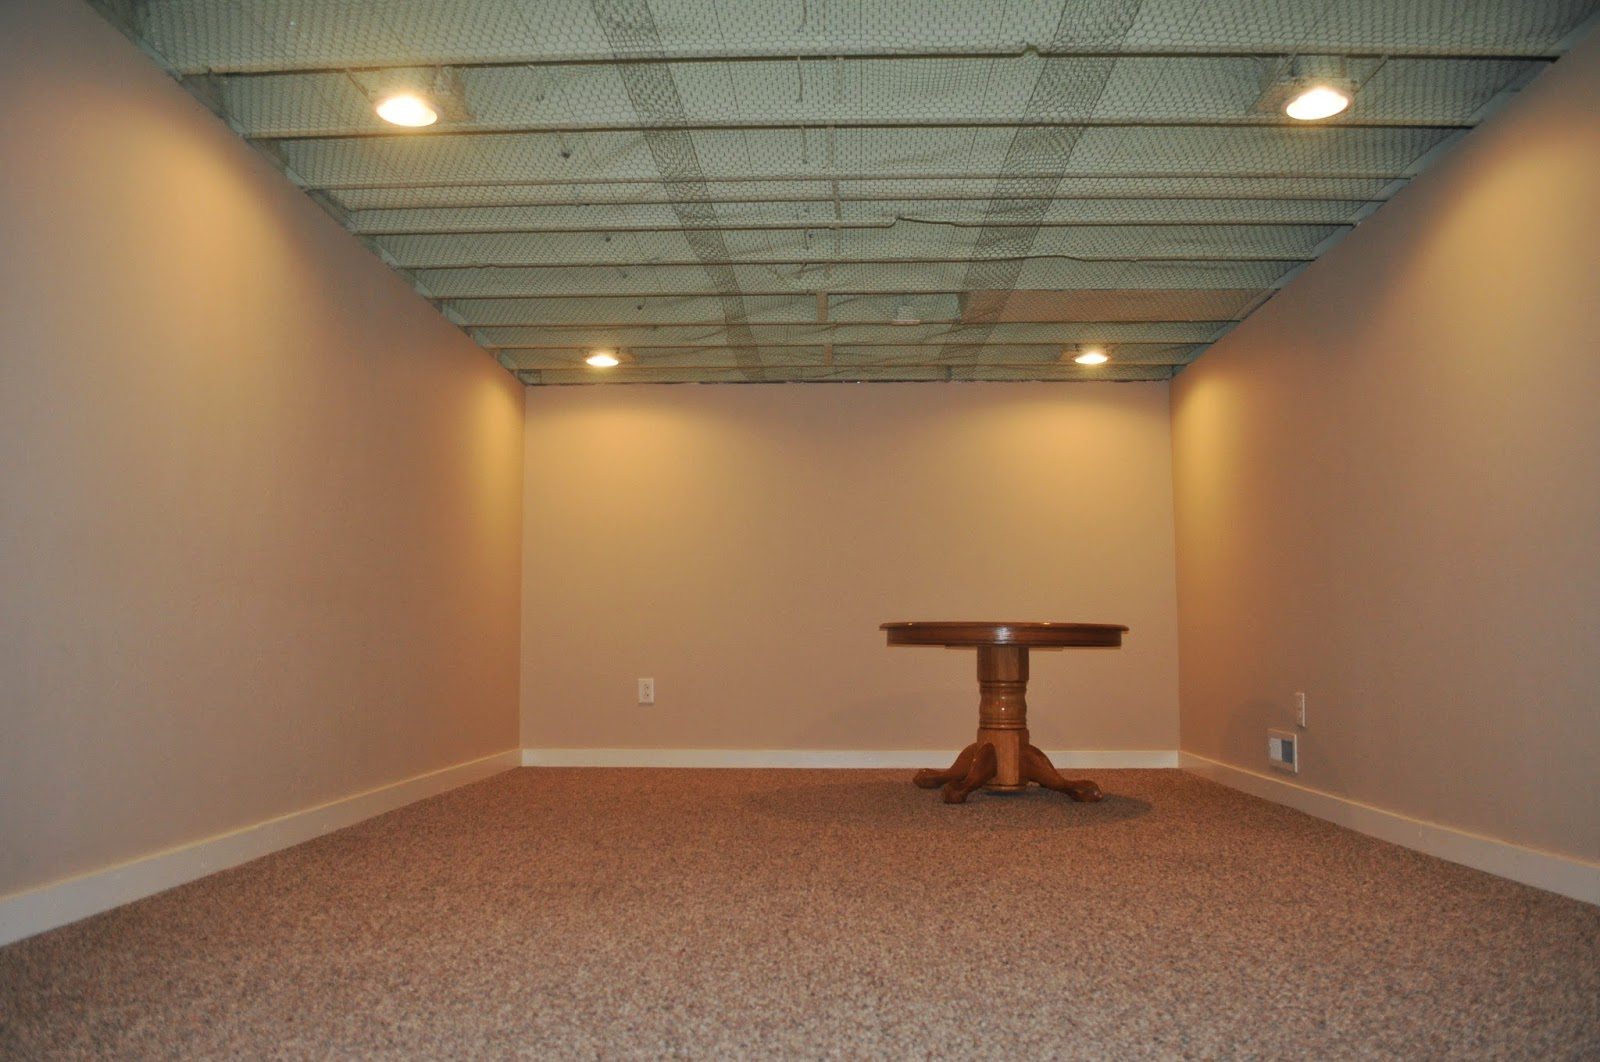 Carri us home painting a basement ceiling for Basement options